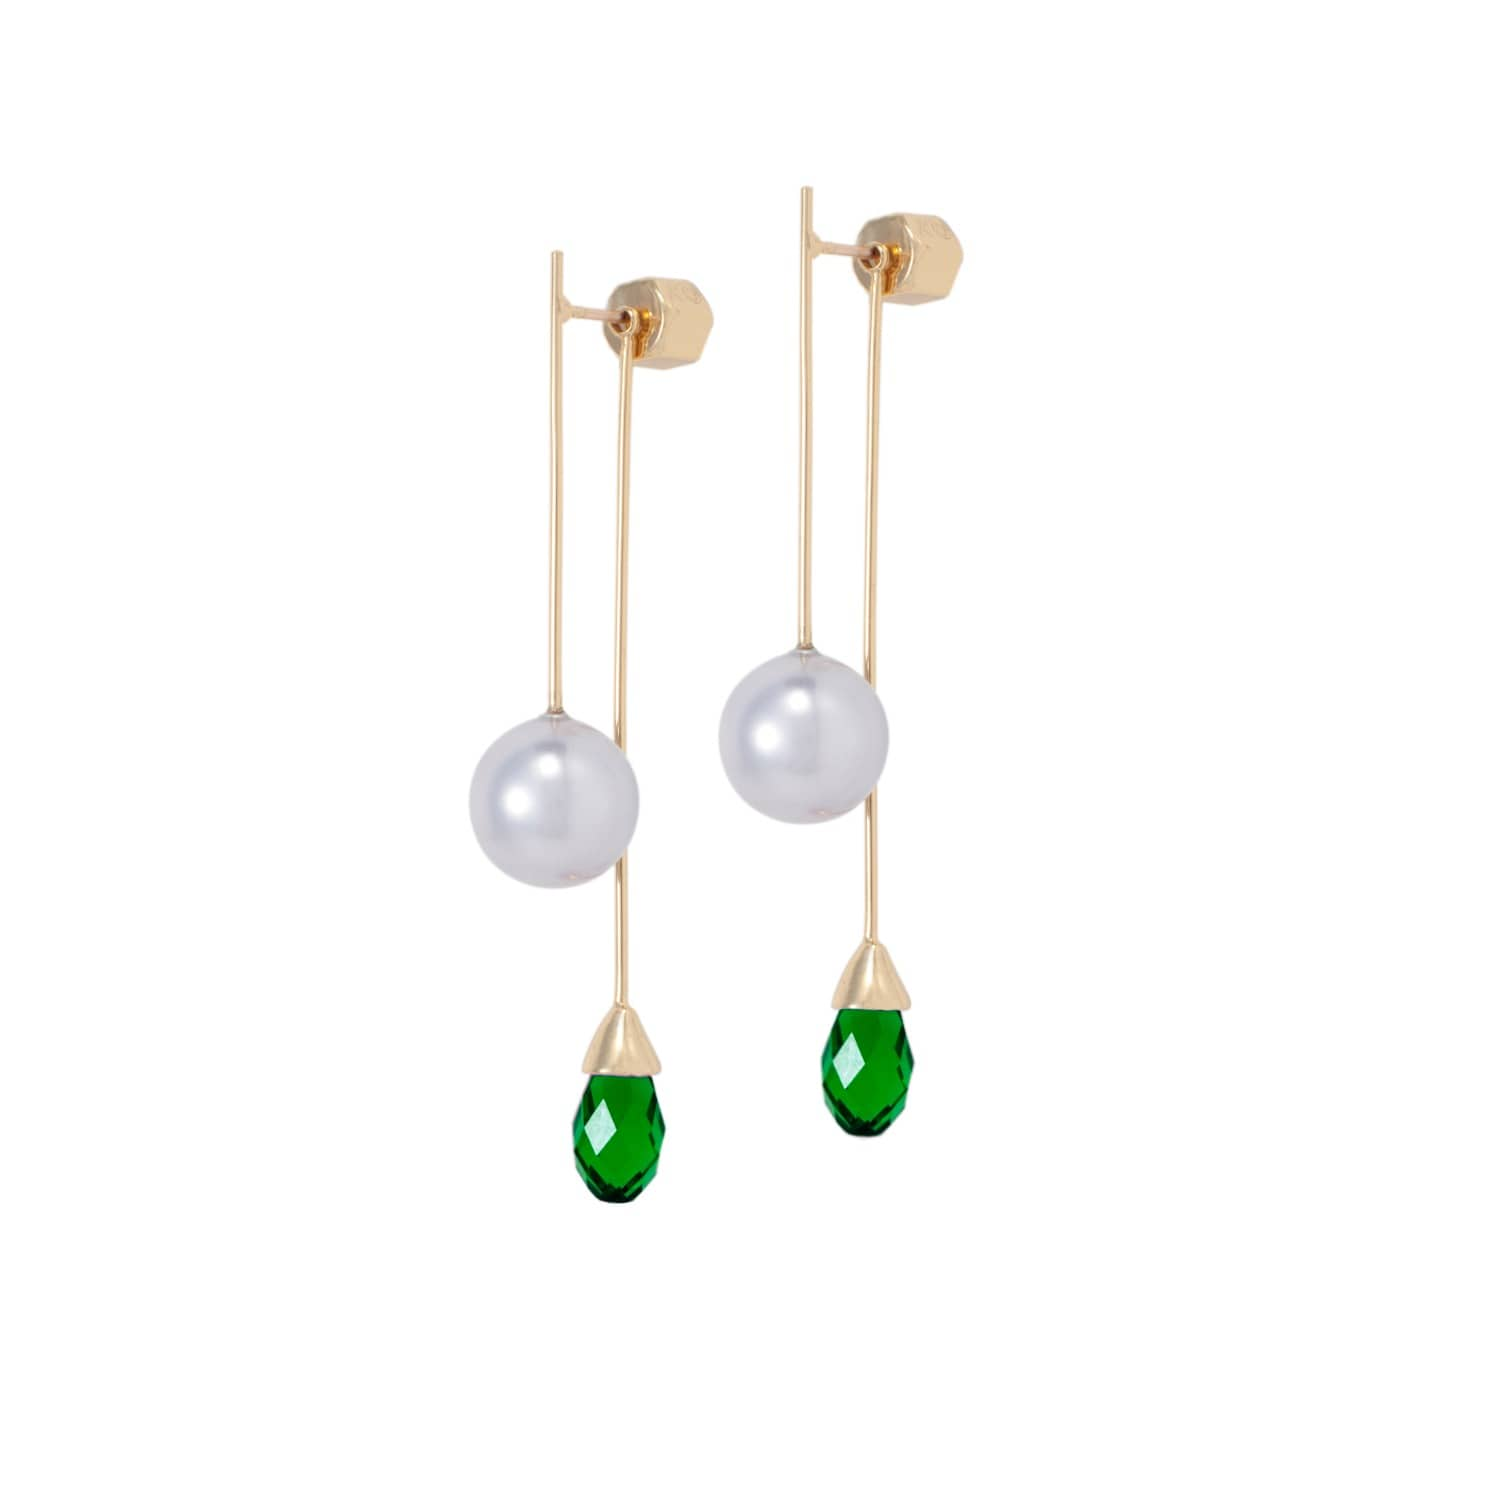 rod image wolf badger yang o pearl us earrings emerald